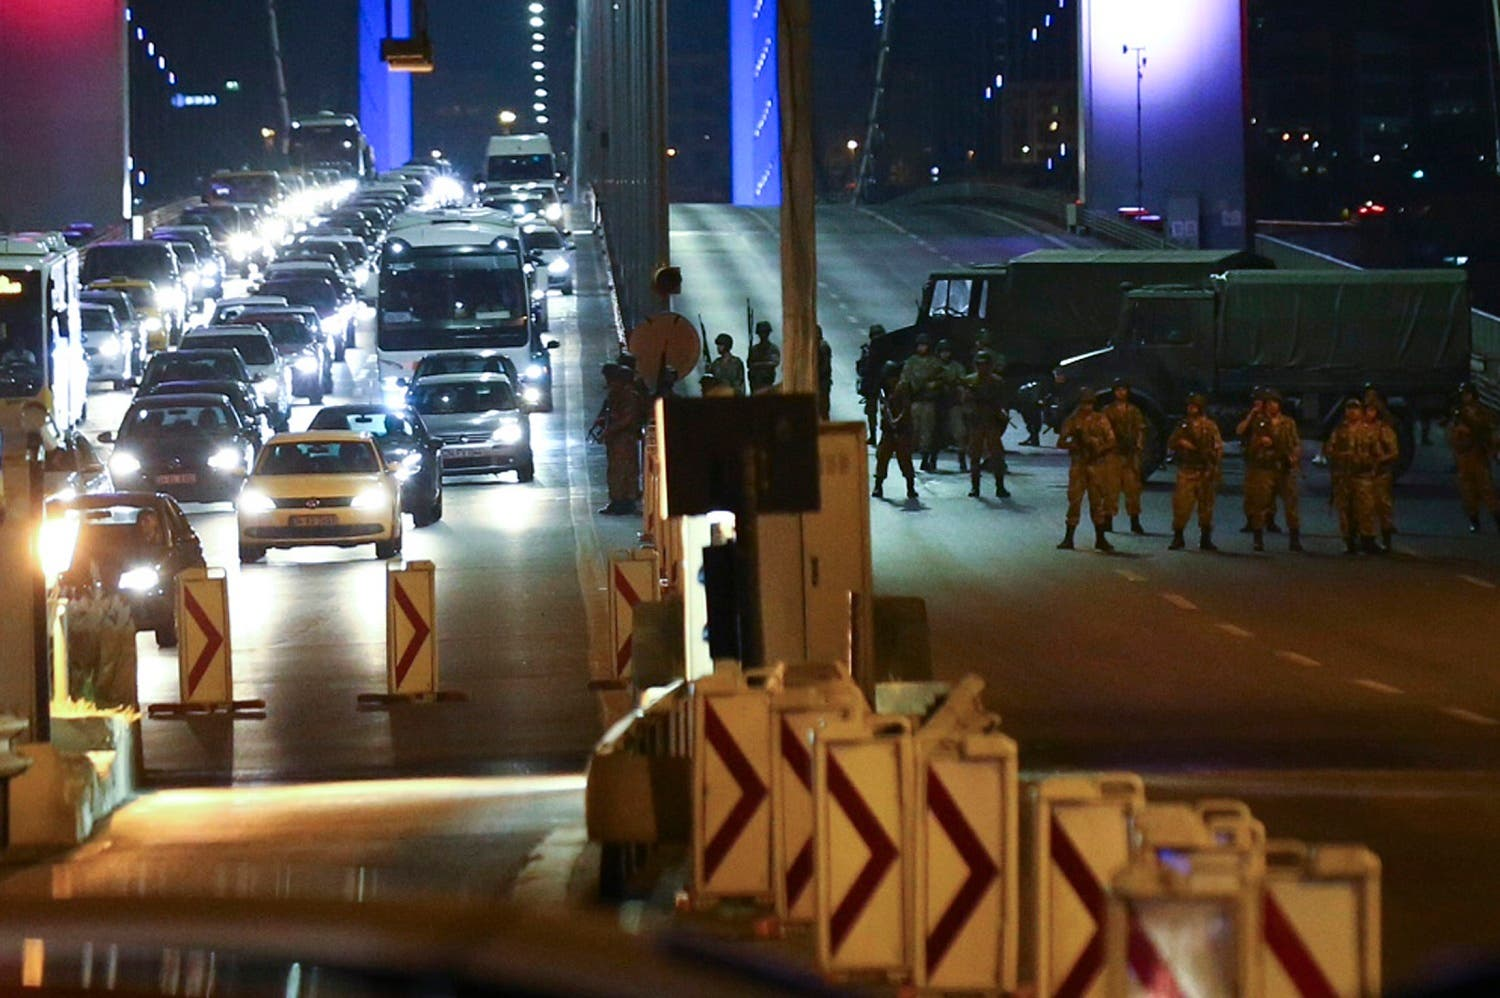 Turkish military block access to the Bosphorus bridge, which links the city's European and Asian sides. (Reuters)